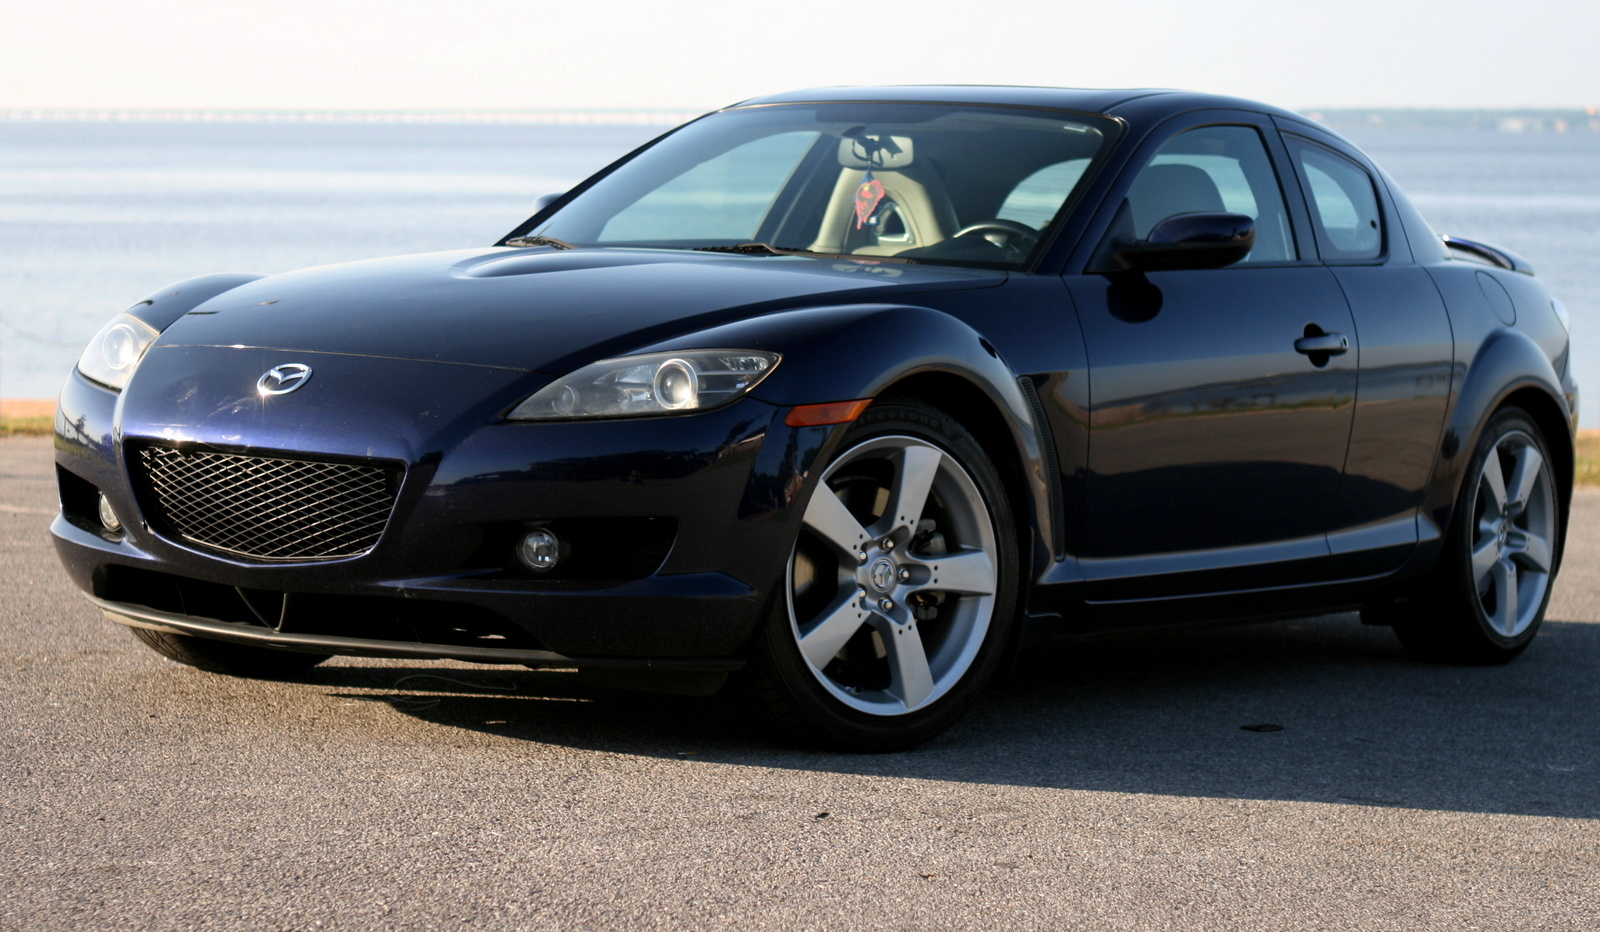 2007 mazda rx 8 grand touring specs car pictures. Black Bedroom Furniture Sets. Home Design Ideas